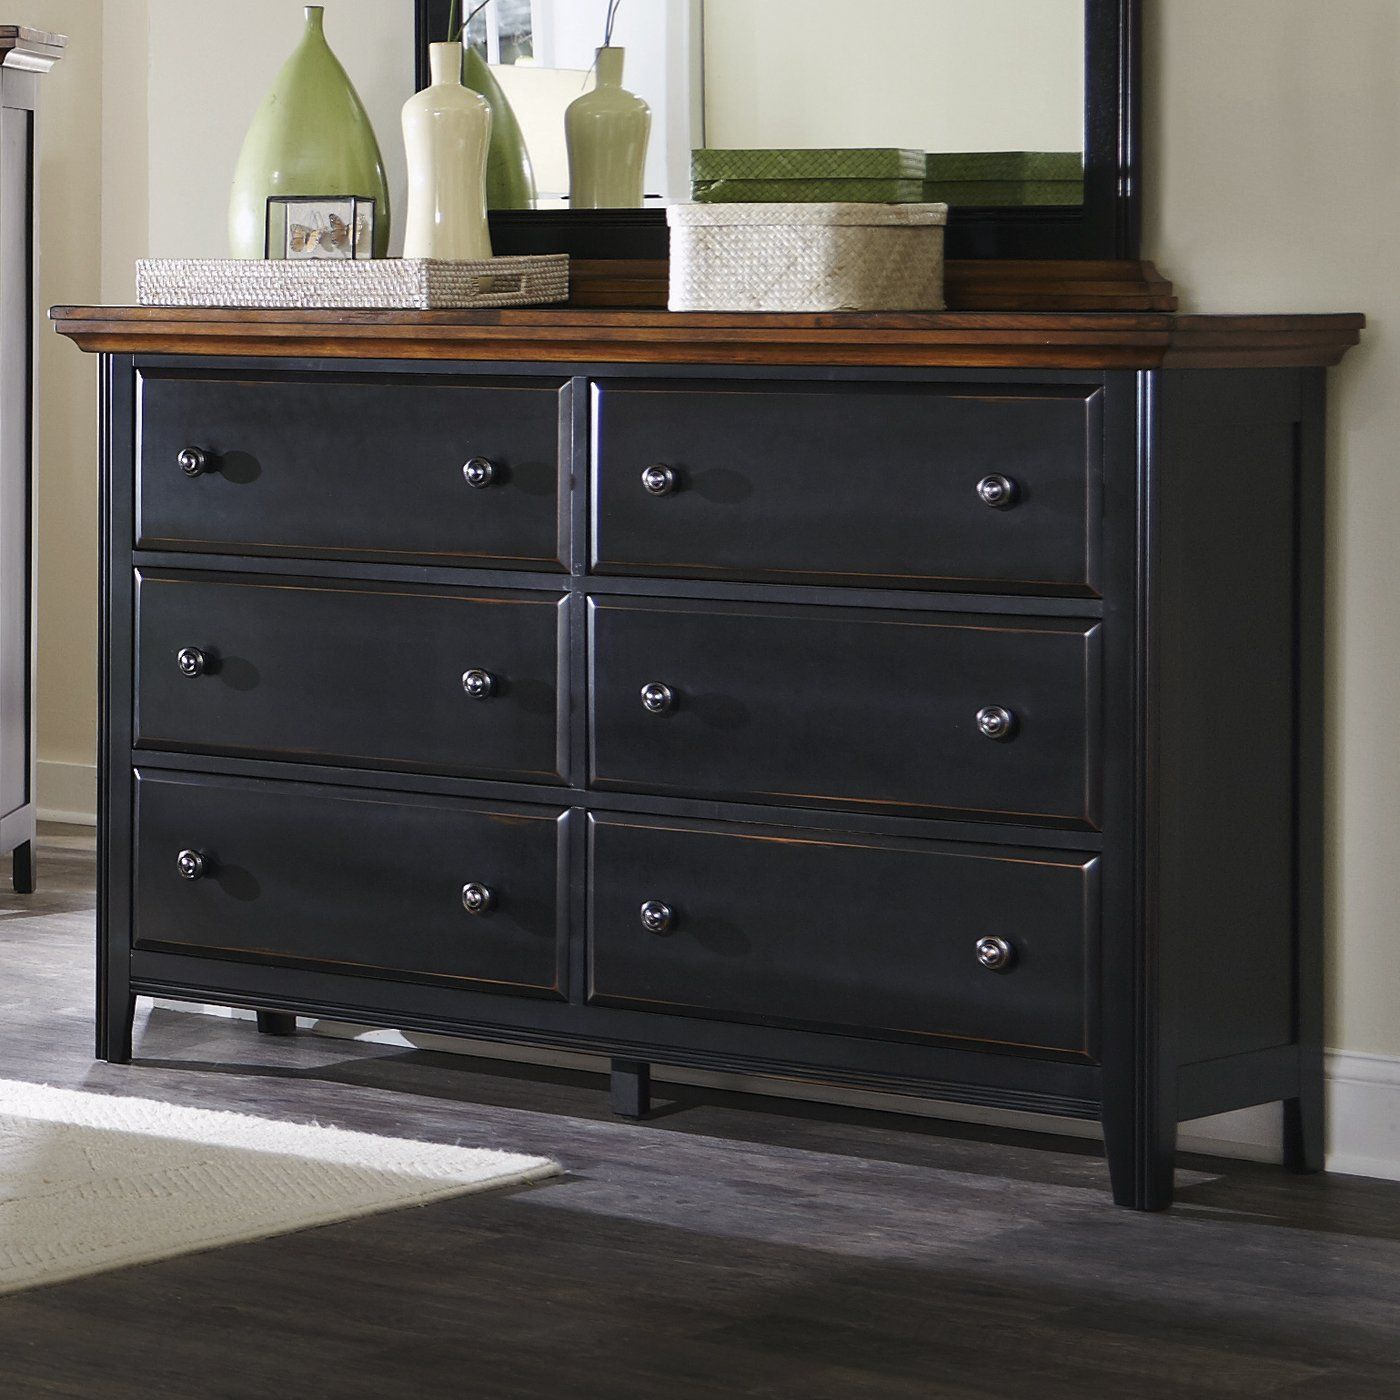 coaster fine furniture 203153 mabel dresser atg stores